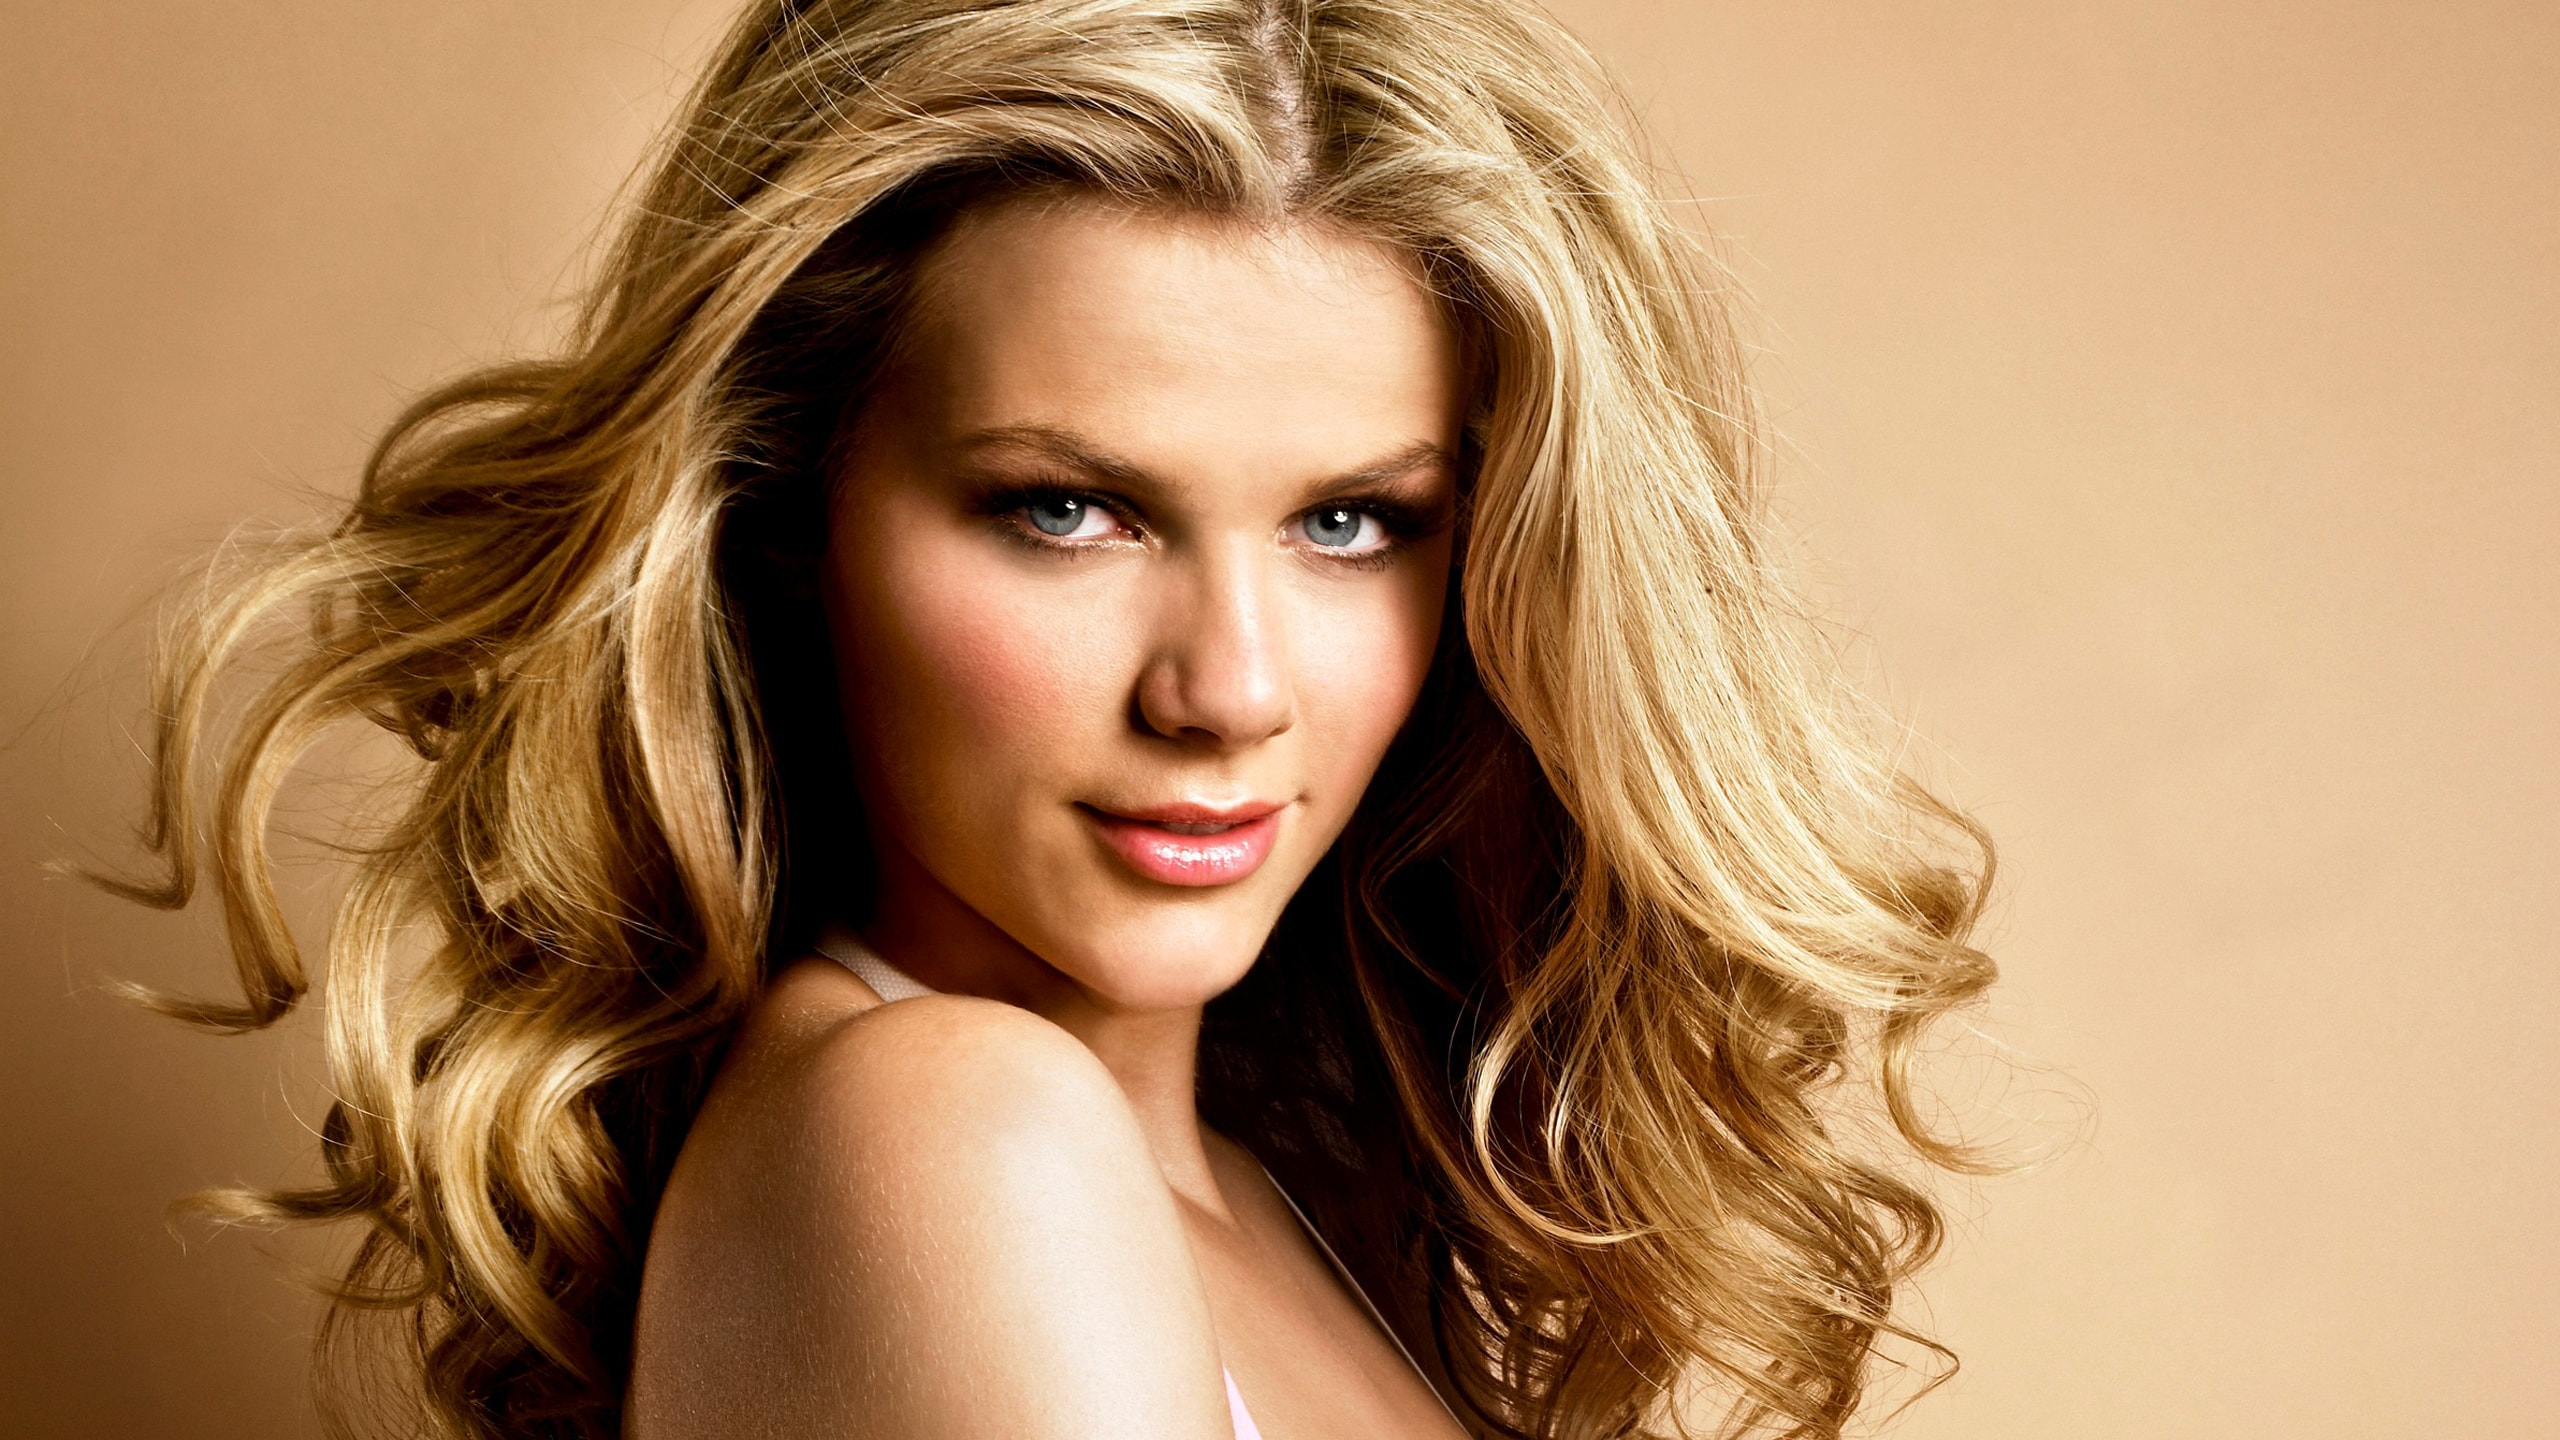 Brooklyn Decker Widescreen for desktop